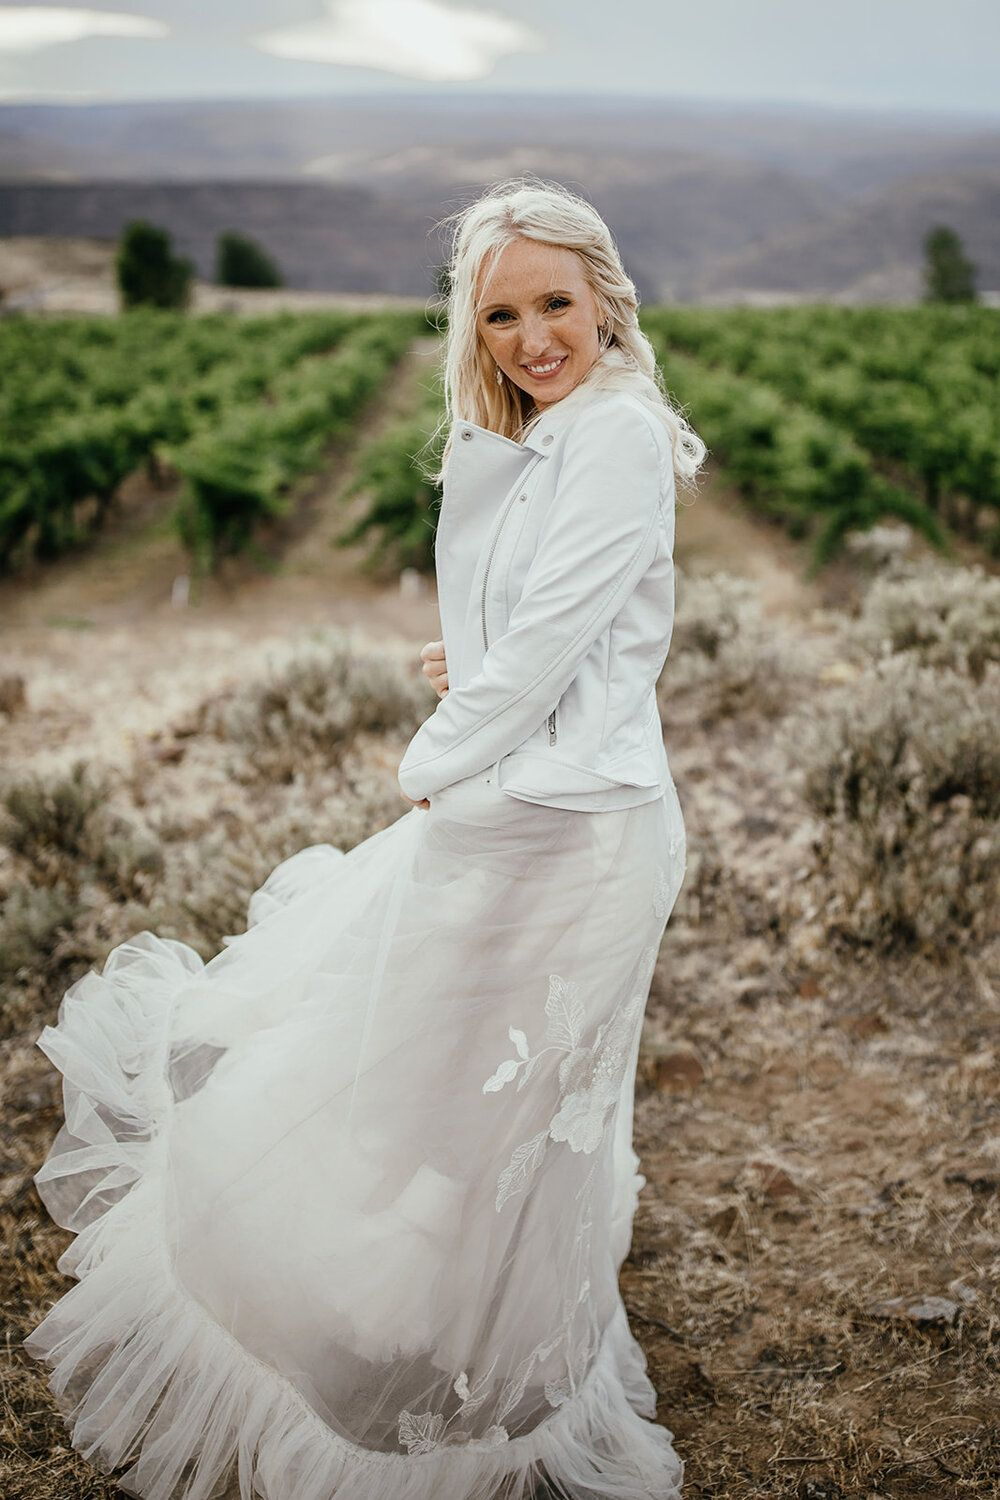 Dare Not To Bare Brides In Leather Jackets One Fab Day Leather Jacket Wedding Short Wedding Dress Boho Gown [ 1500 x 1000 Pixel ]